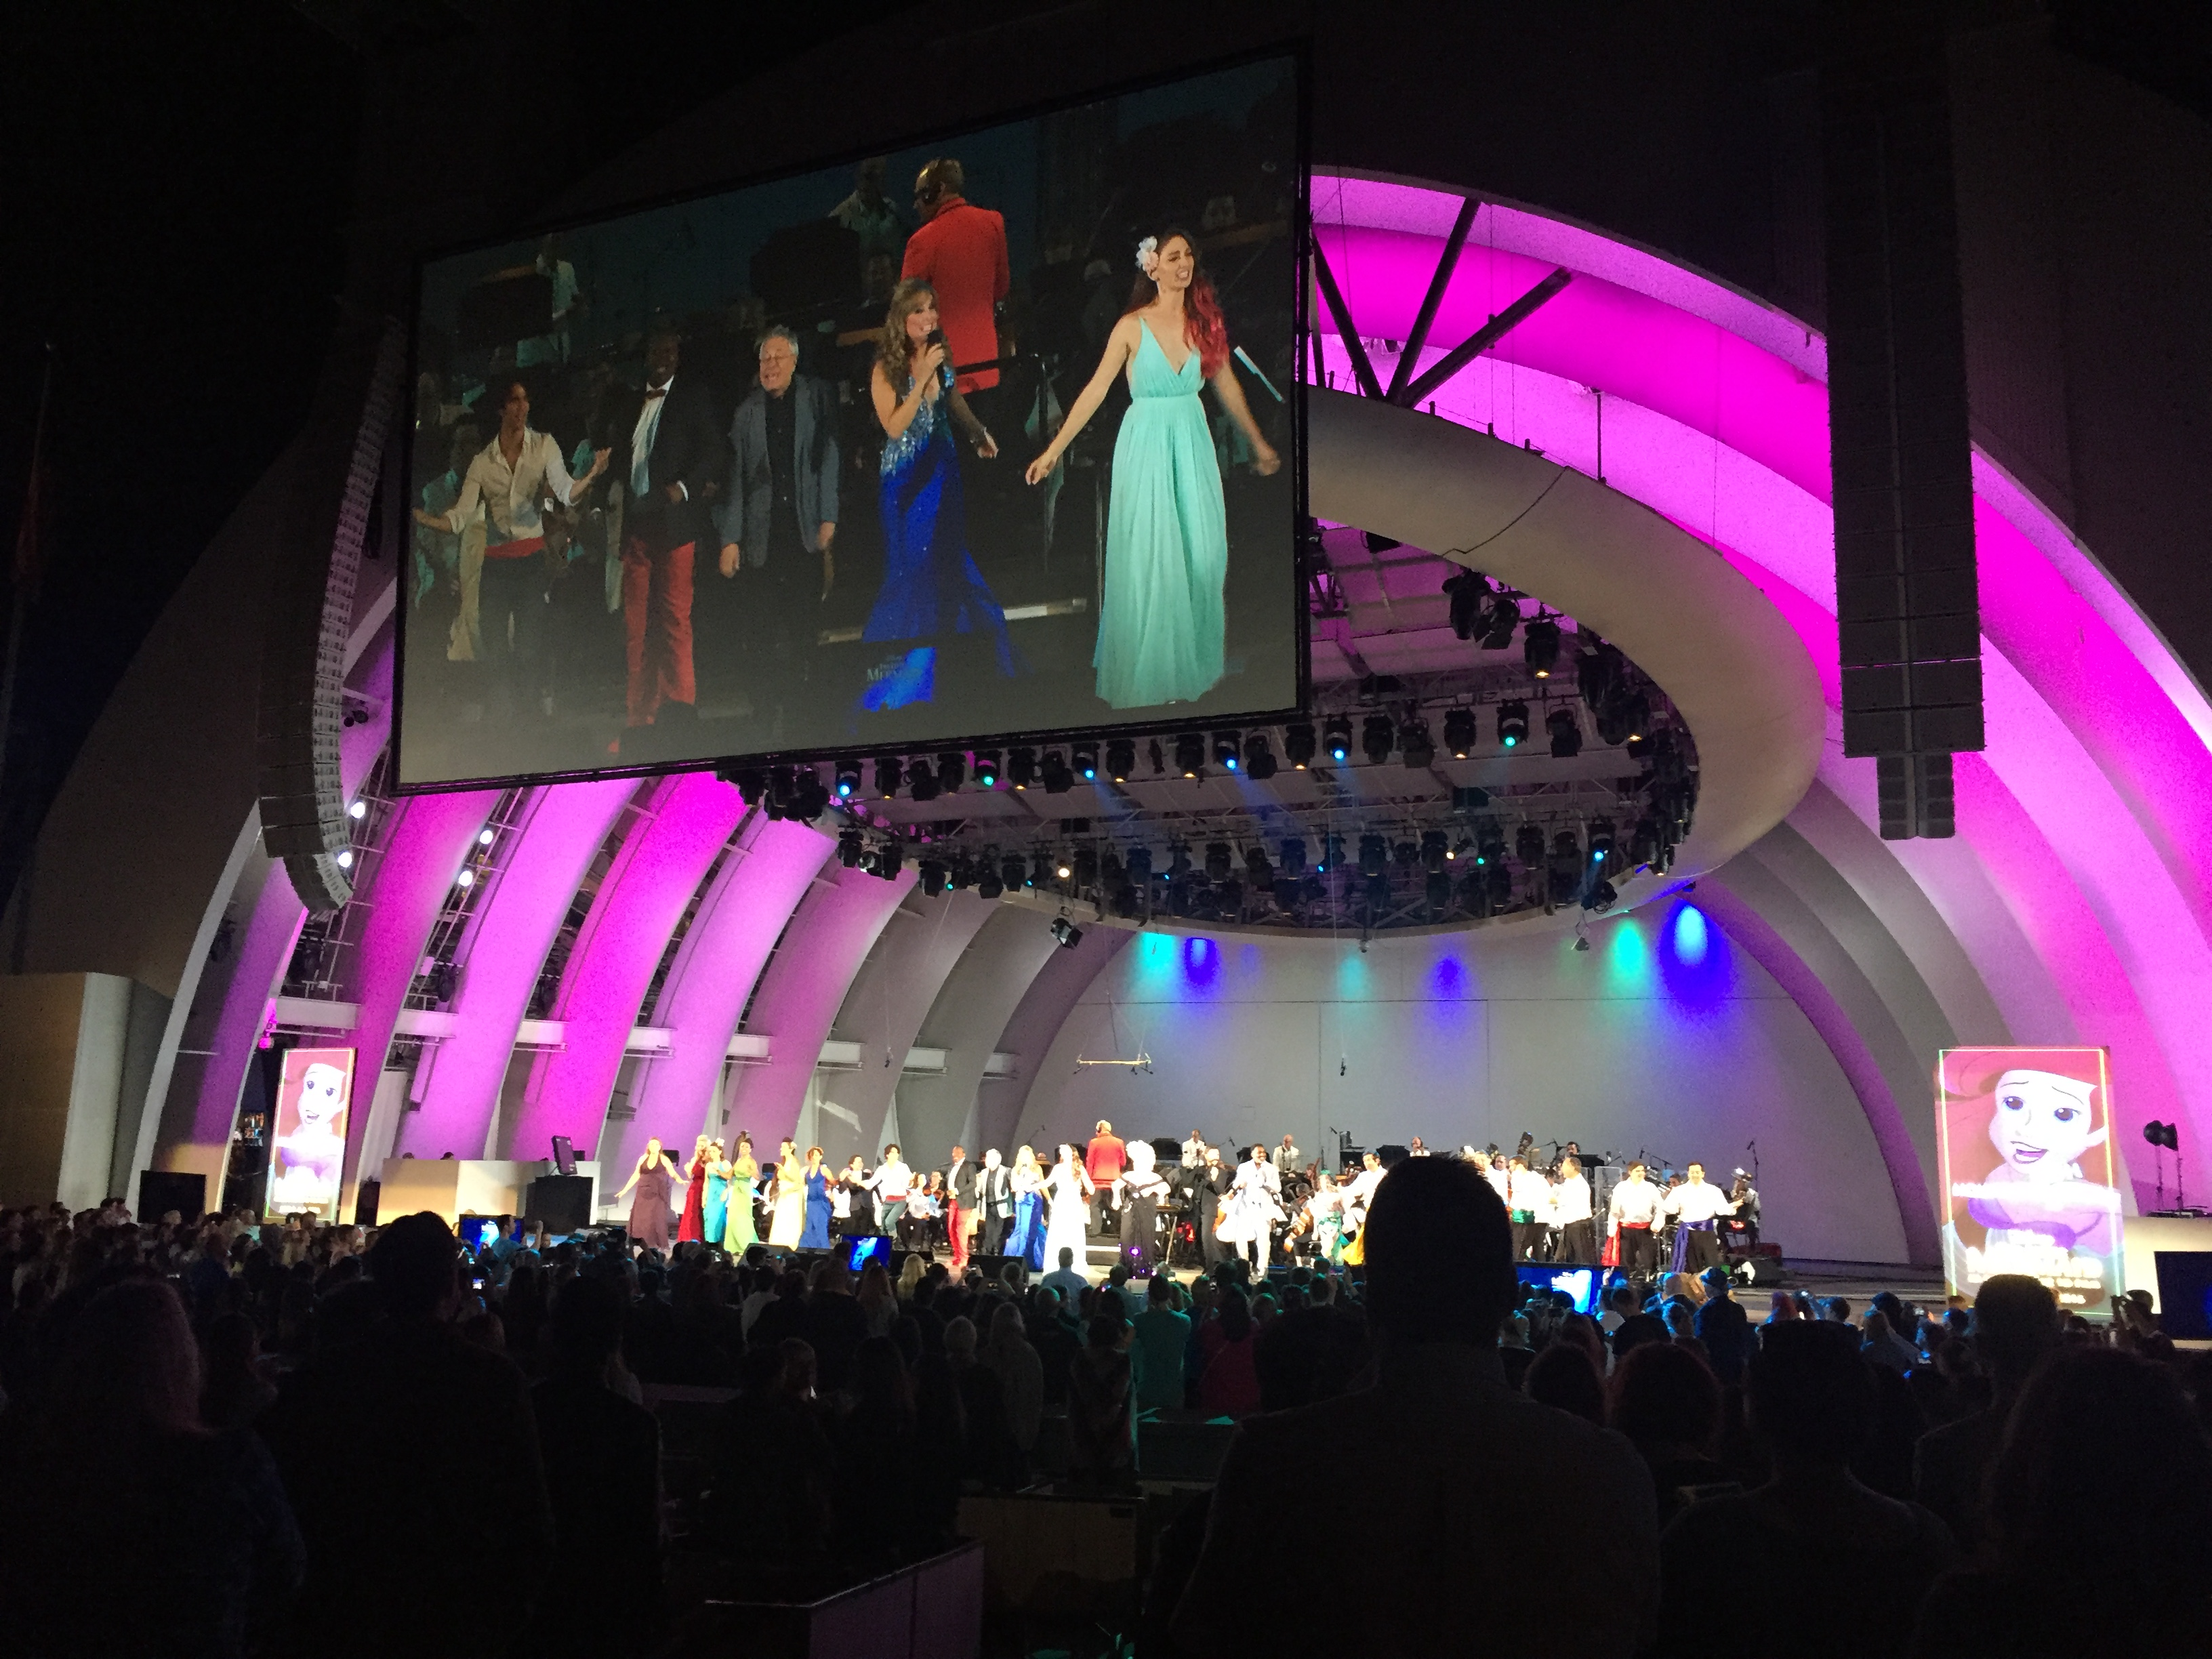 Event Recap: The Little Mermaid Live at the Hollywood Bowl